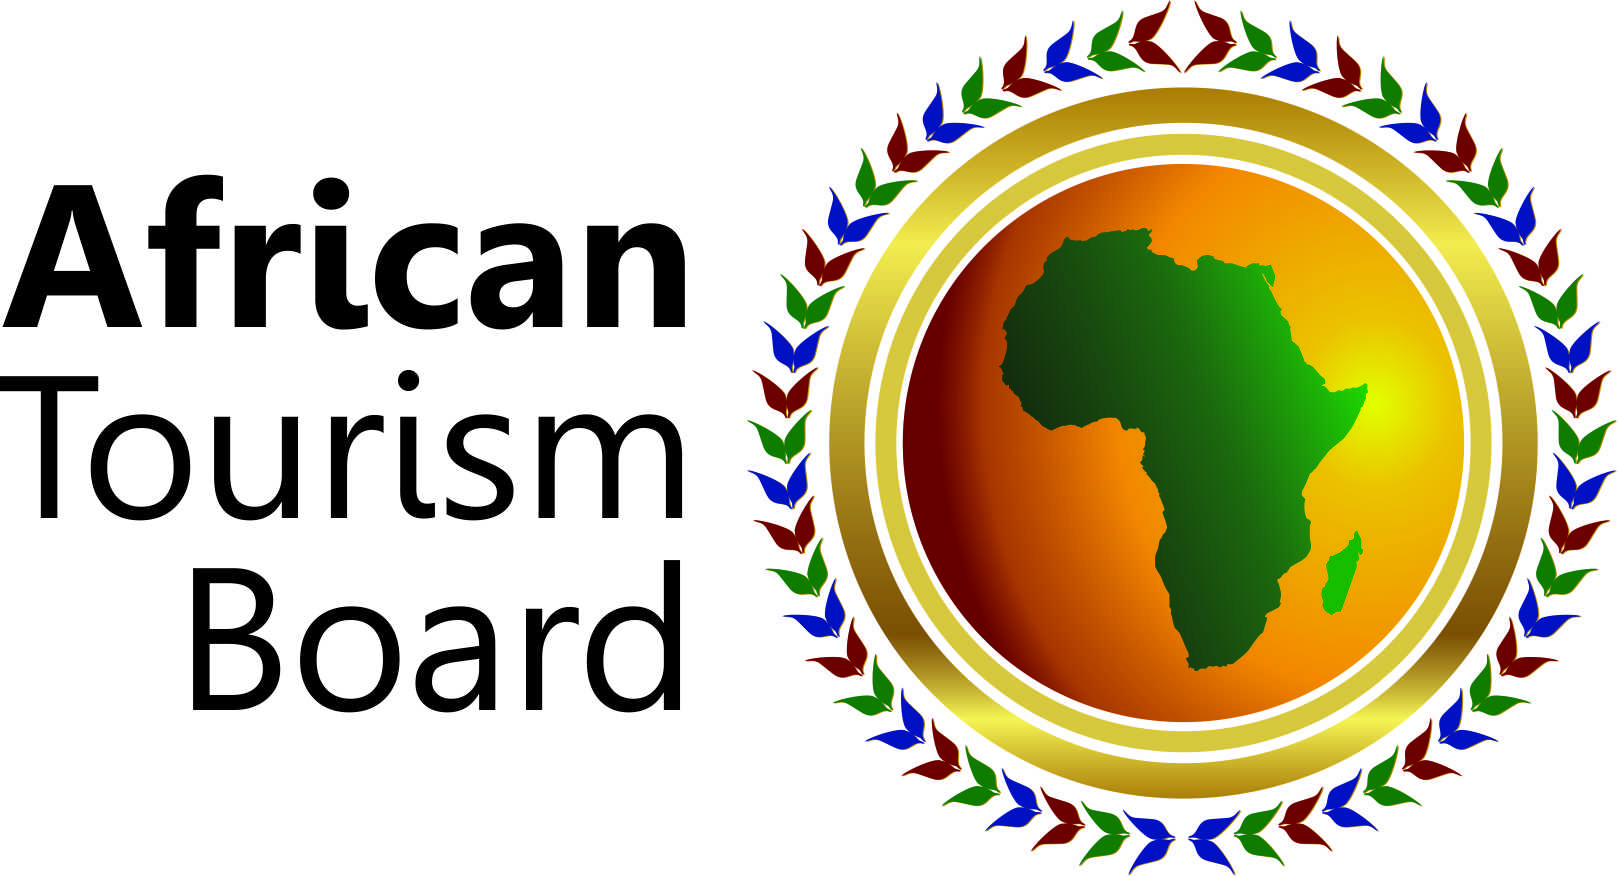 African Tourism Board reaching out to the European Union